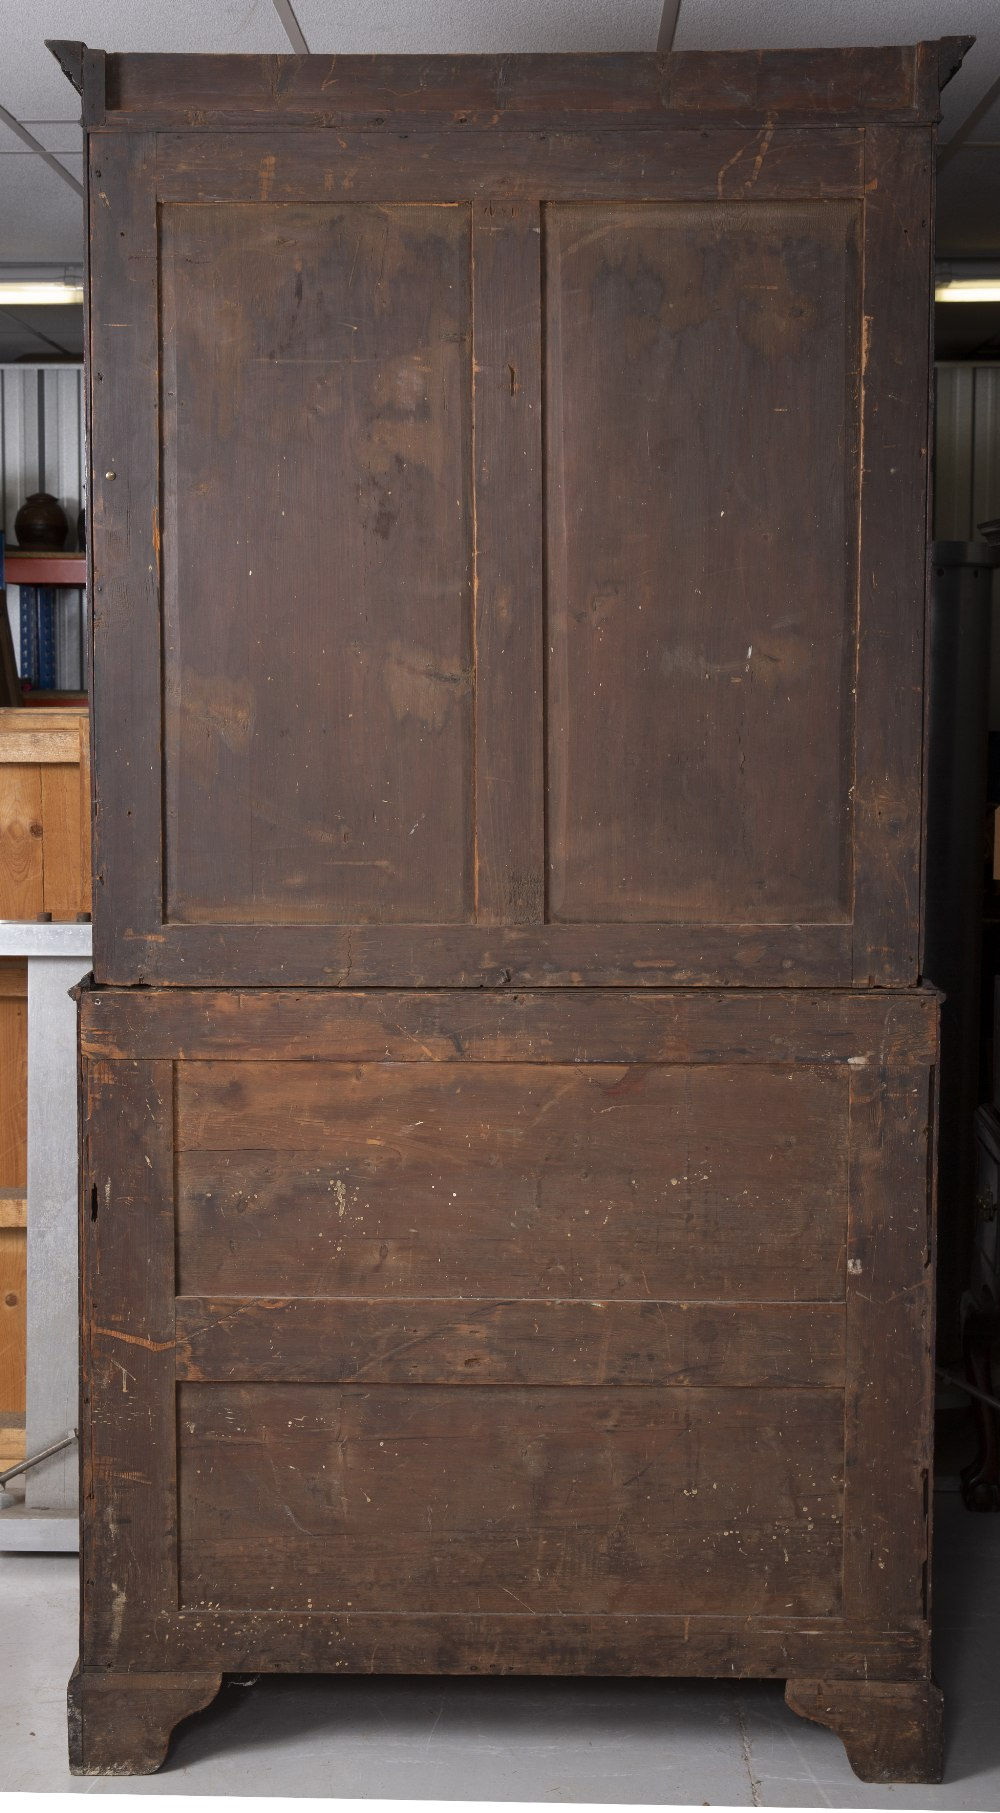 A GEORGE III MAHOGANY SECRETAIRE BOOKCASE, the upper part with a dentil moulded cornice above - Image 5 of 5